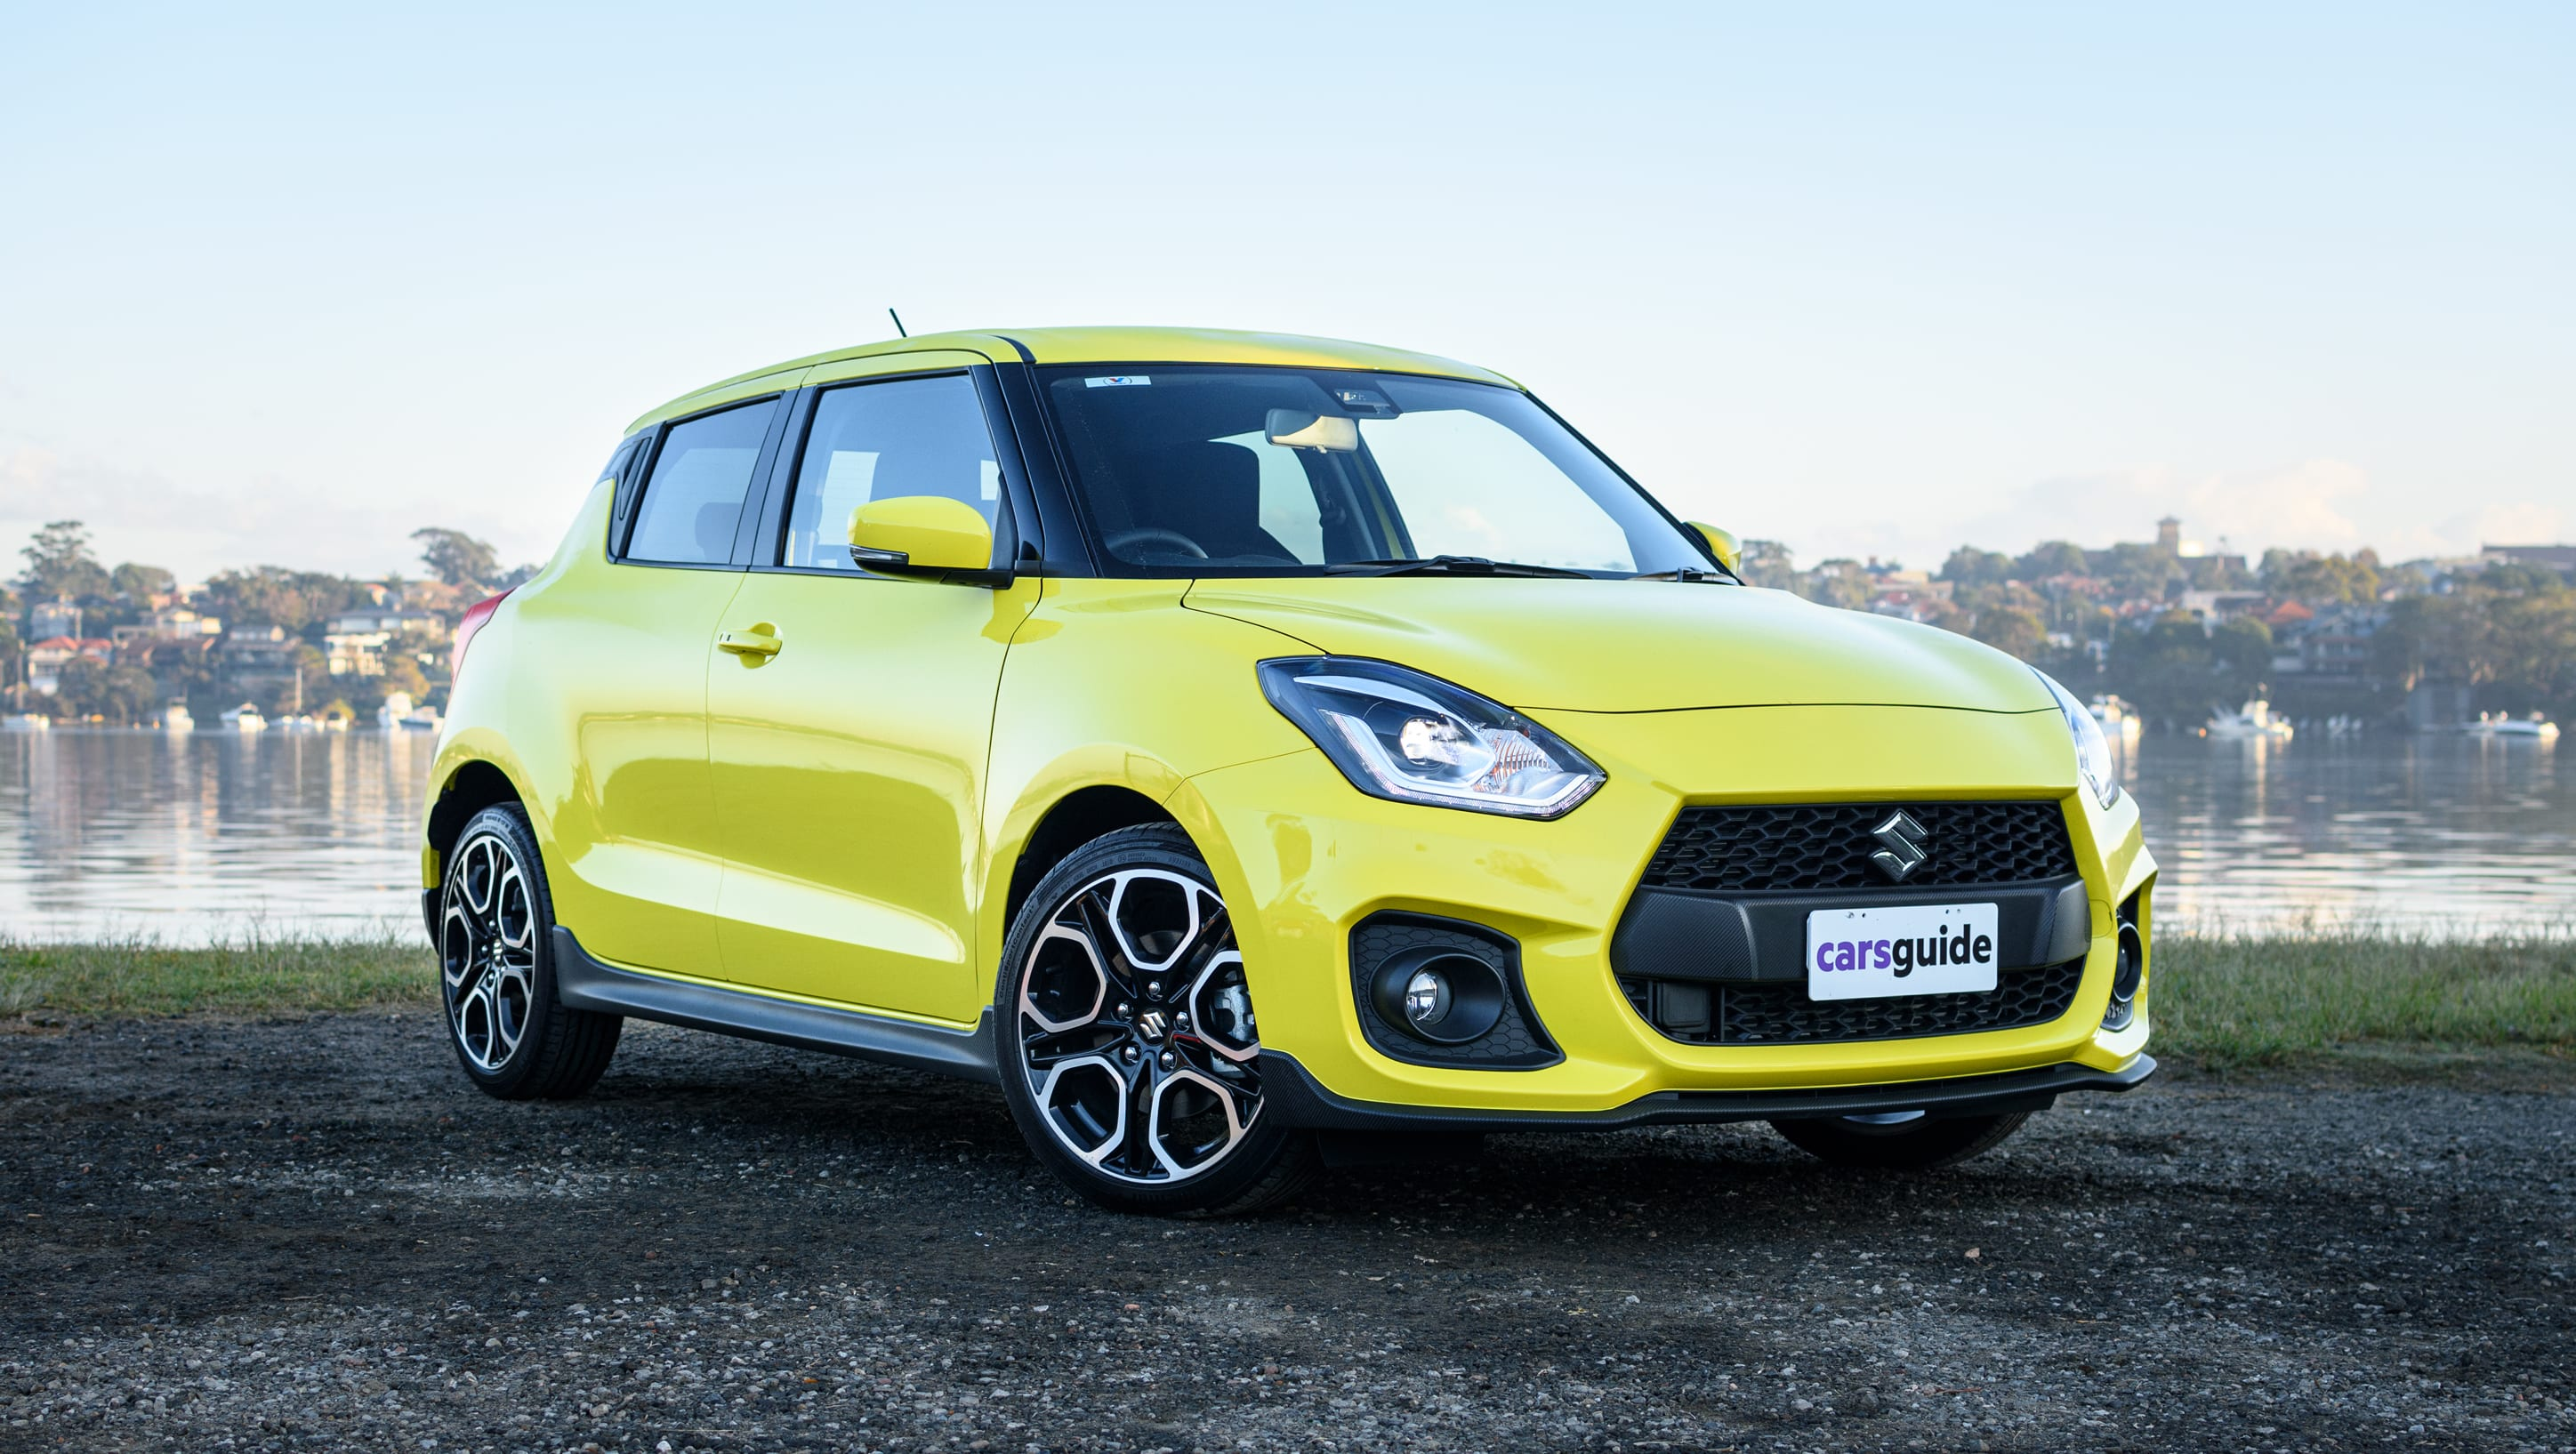 New Suzuki Swift 4 confirmed: Facelifted light car due from